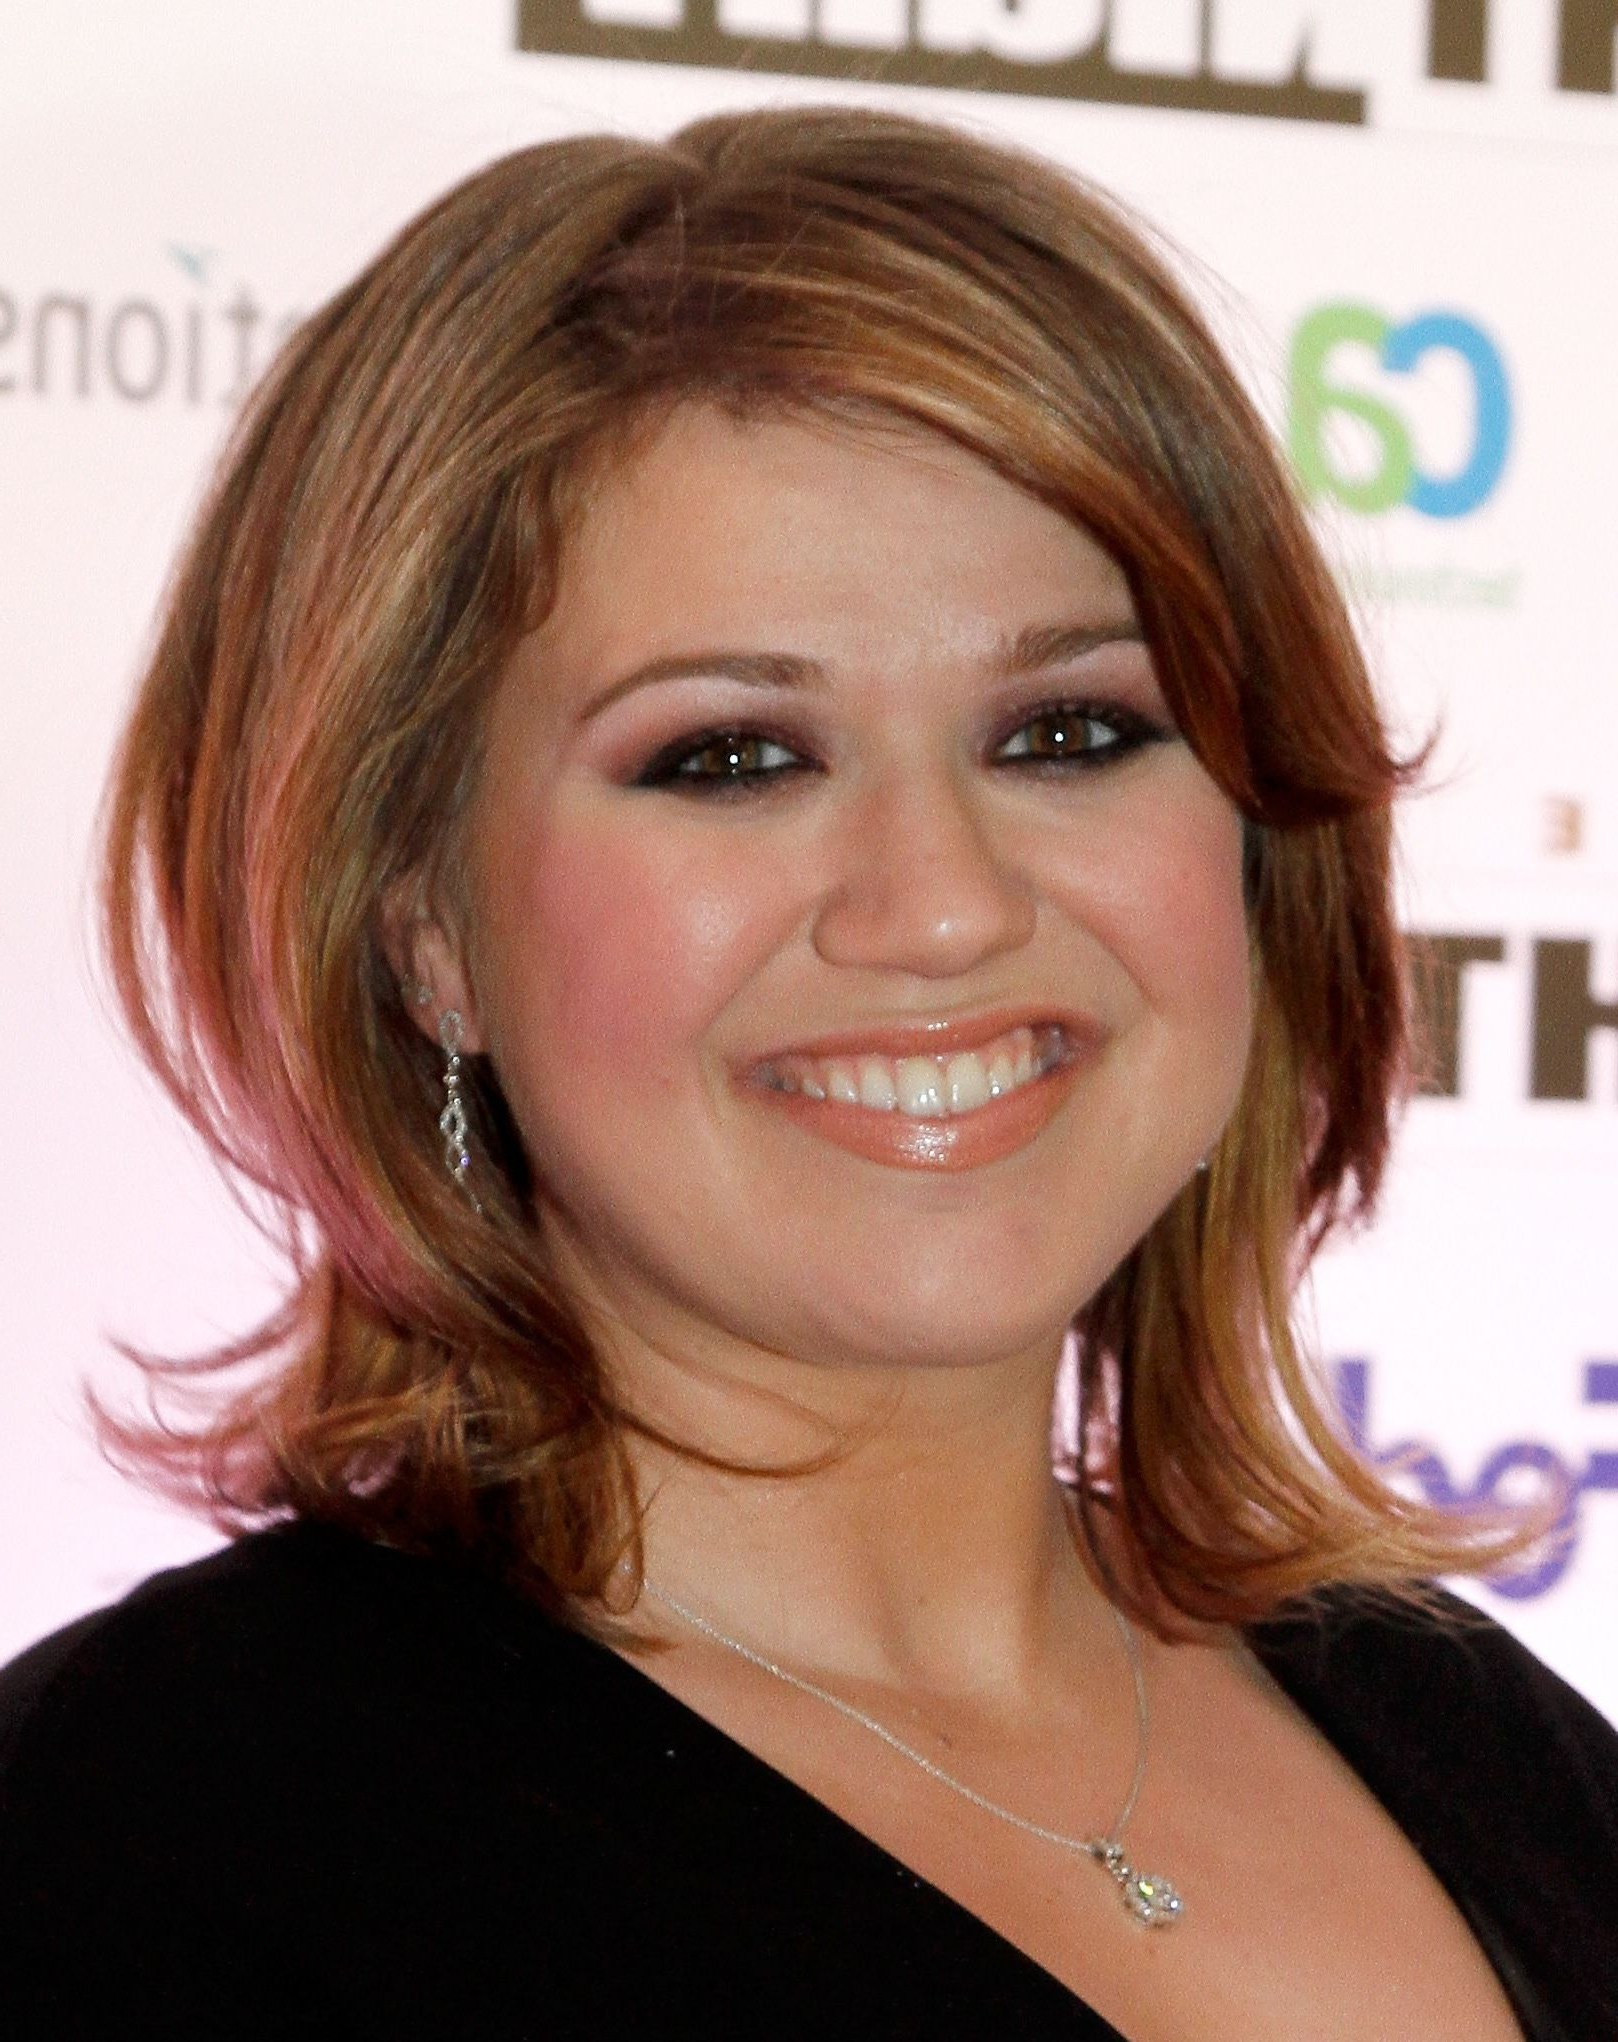 Flattering Celebrity Hairstyles For Round Faces | Celebrity In Kelly Clarkson Short Hairstyles (View 8 of 25)